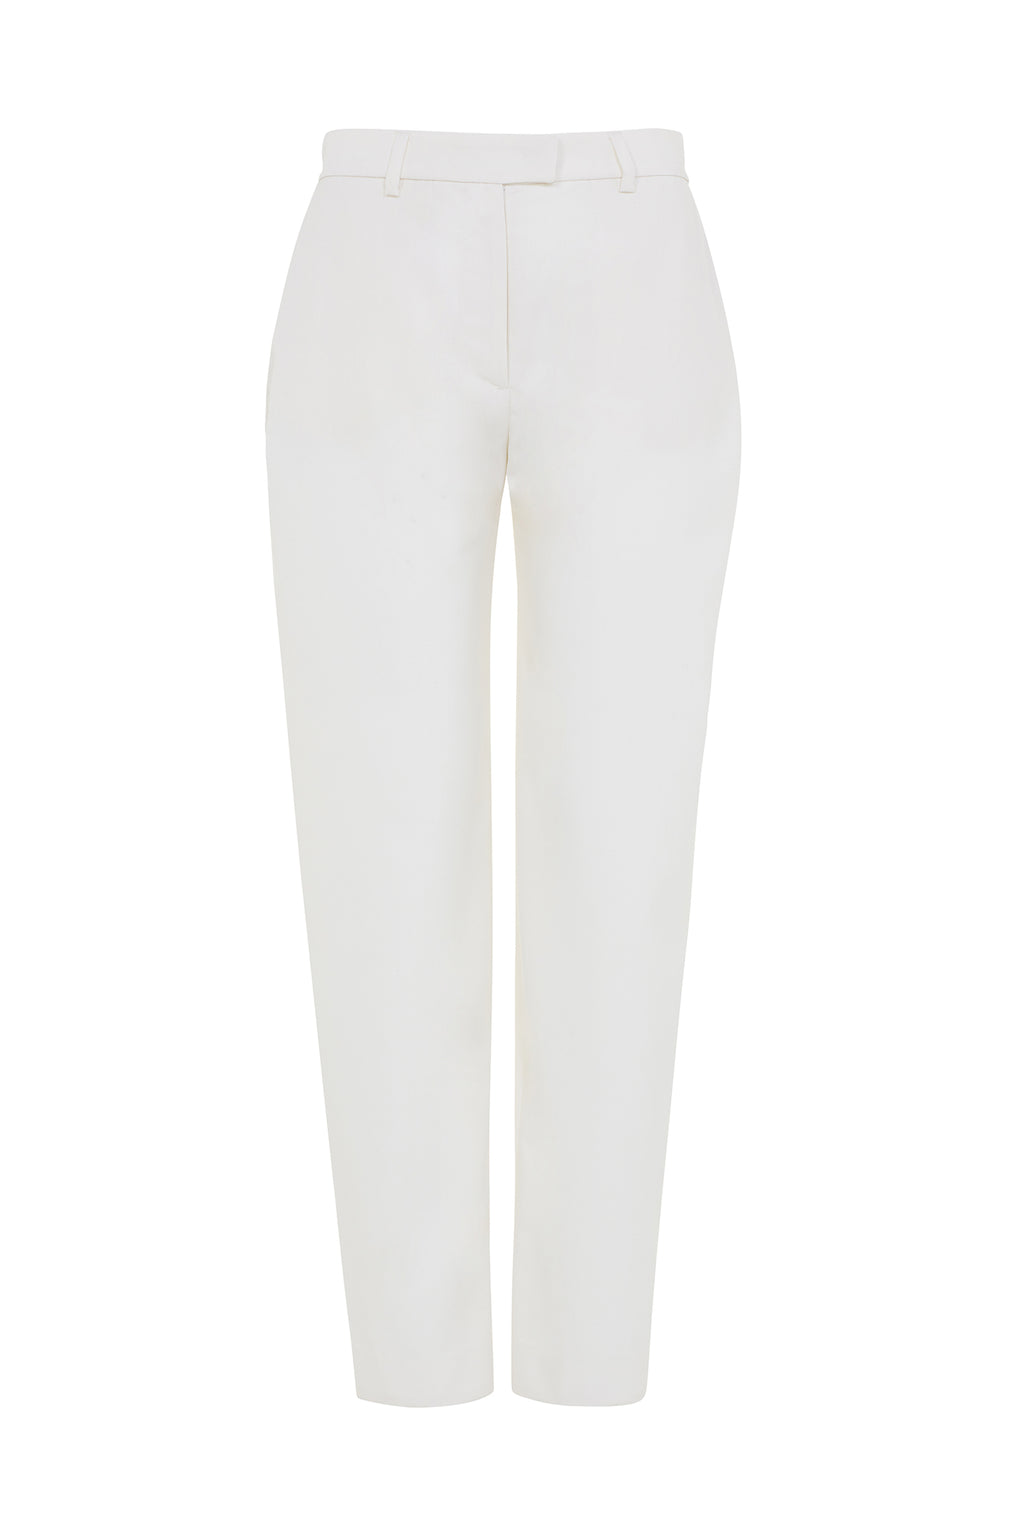 White Tailored Trouser